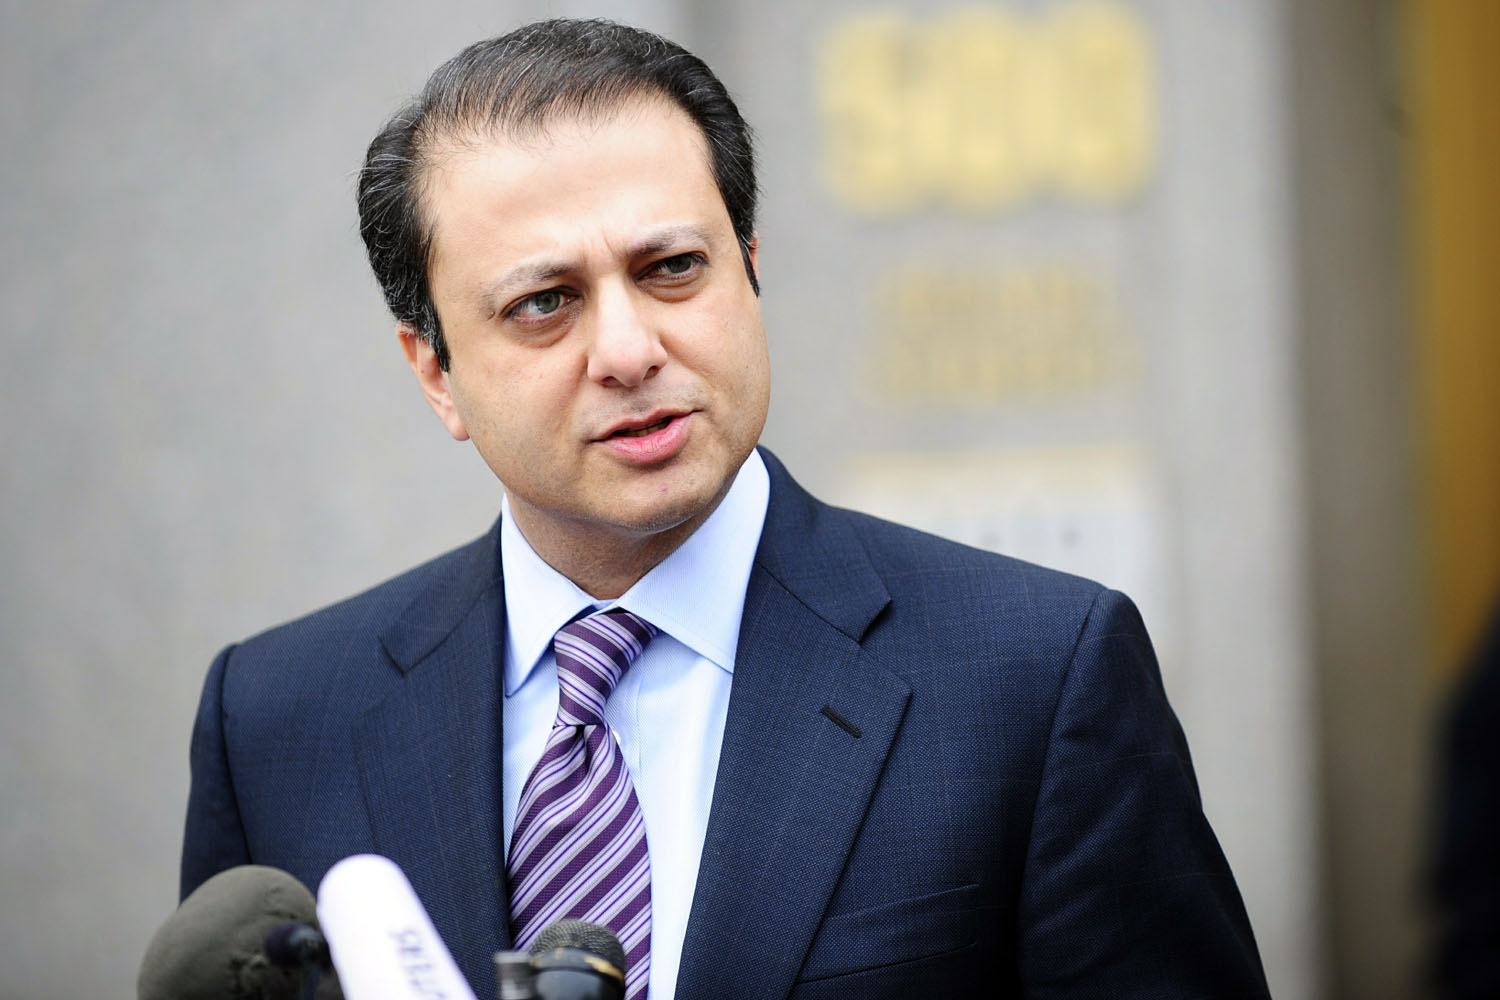 US attorney and lead prosecutor Preet Bh